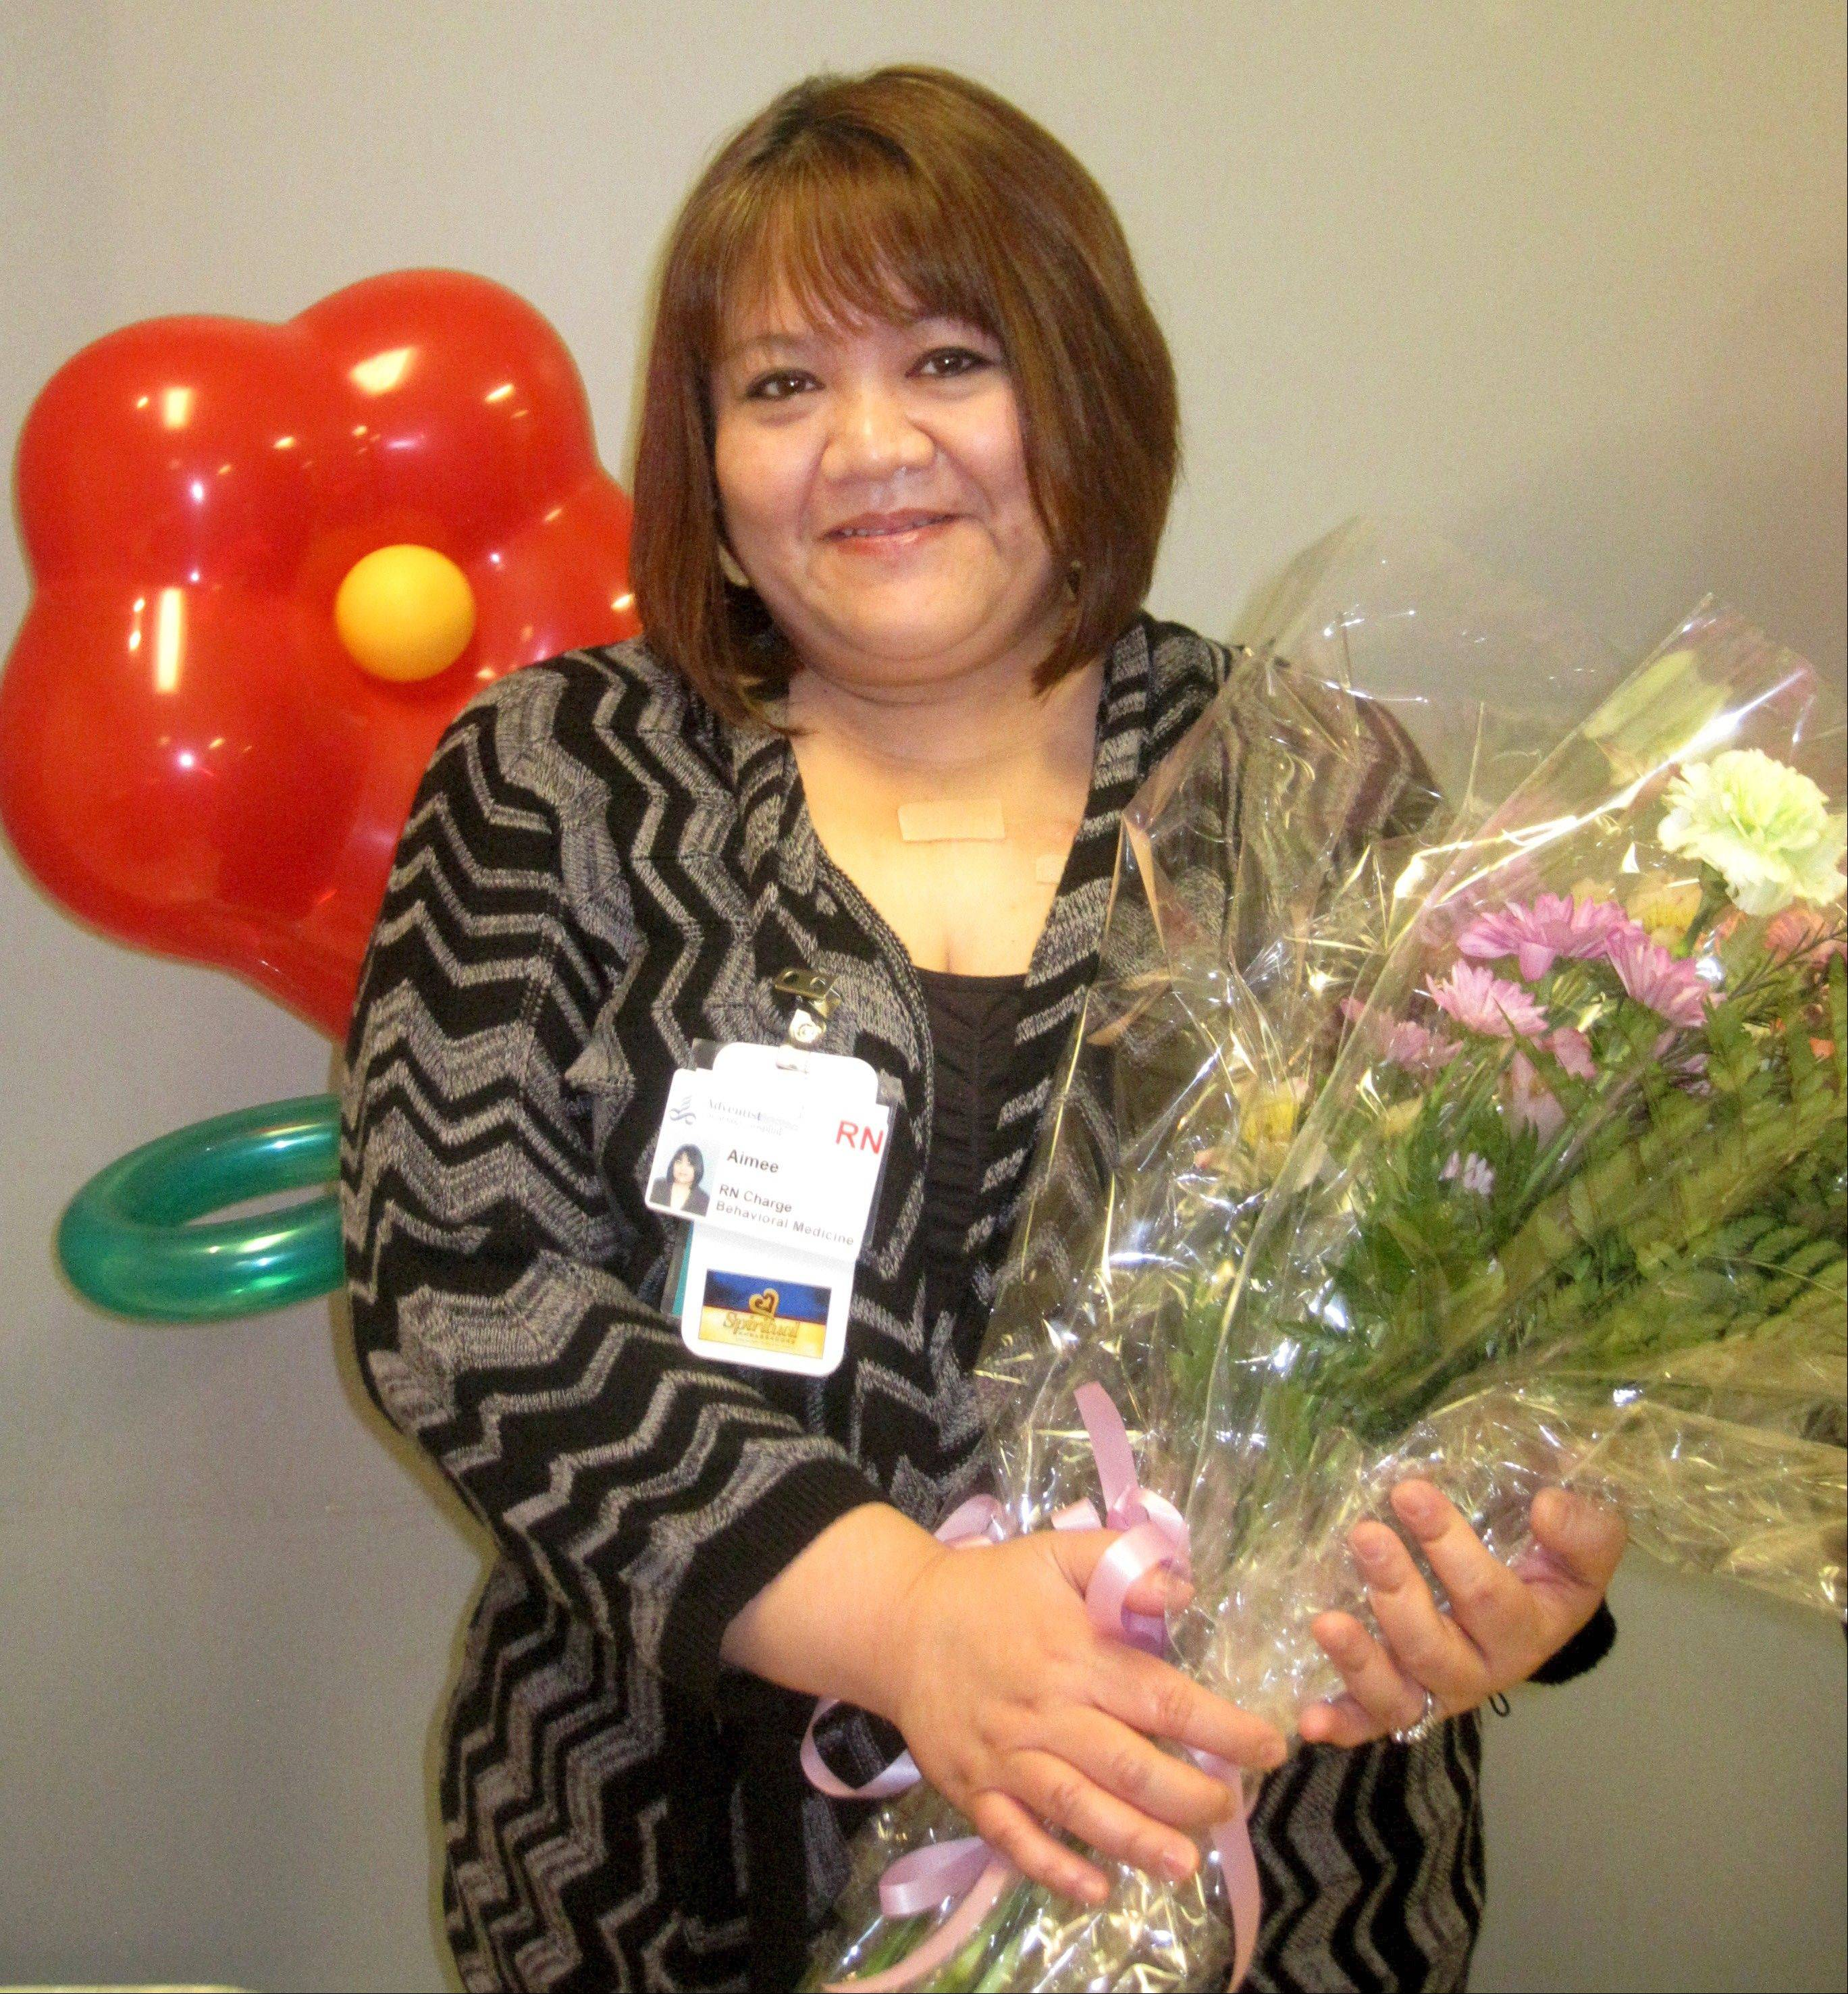 Amelissa Sarrol, of Glendale Heights, was named Adventist GlenOaks Hospital's Nurse of the Year.